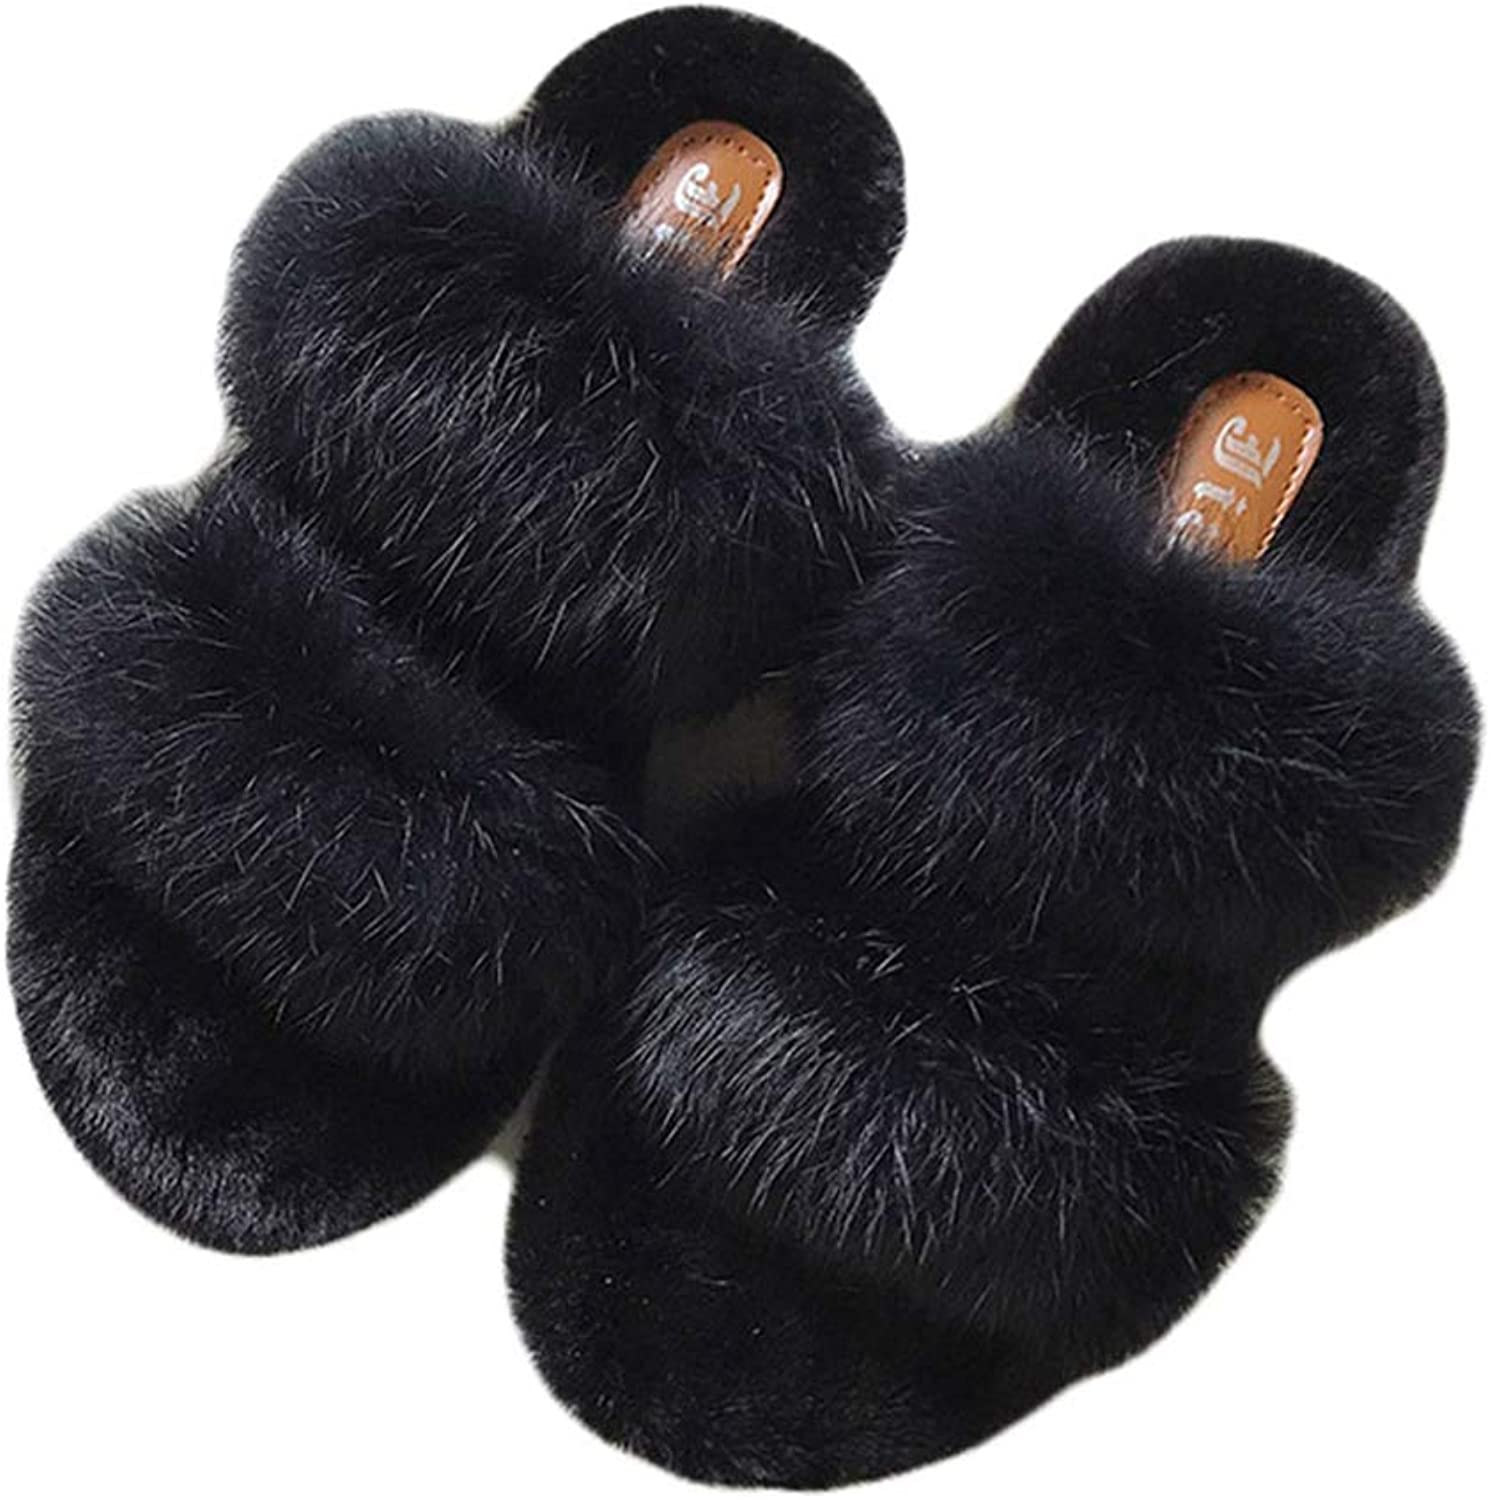 Kyle Walsh Pa Women Slippers shoes Rabbit Fur Slippers Real Hair Slides Female Furry Indoor Flip Flops Fluffy Plush shoes House